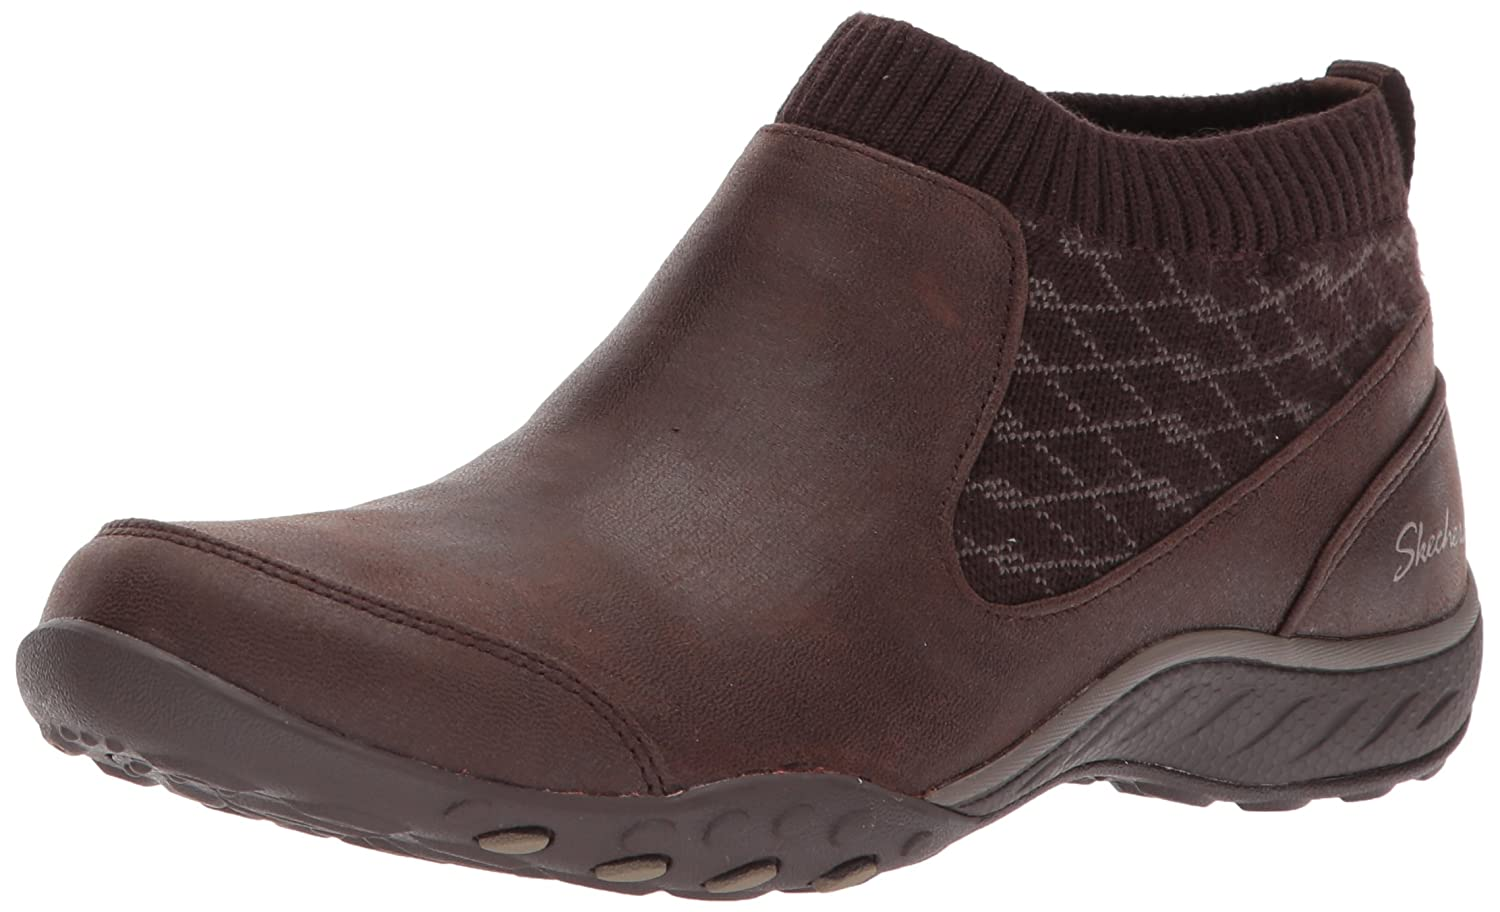 Skechers Women's Breathe Easy Declare Sneaker B072ZBS61G 7.5 B(M) US|Chocolate